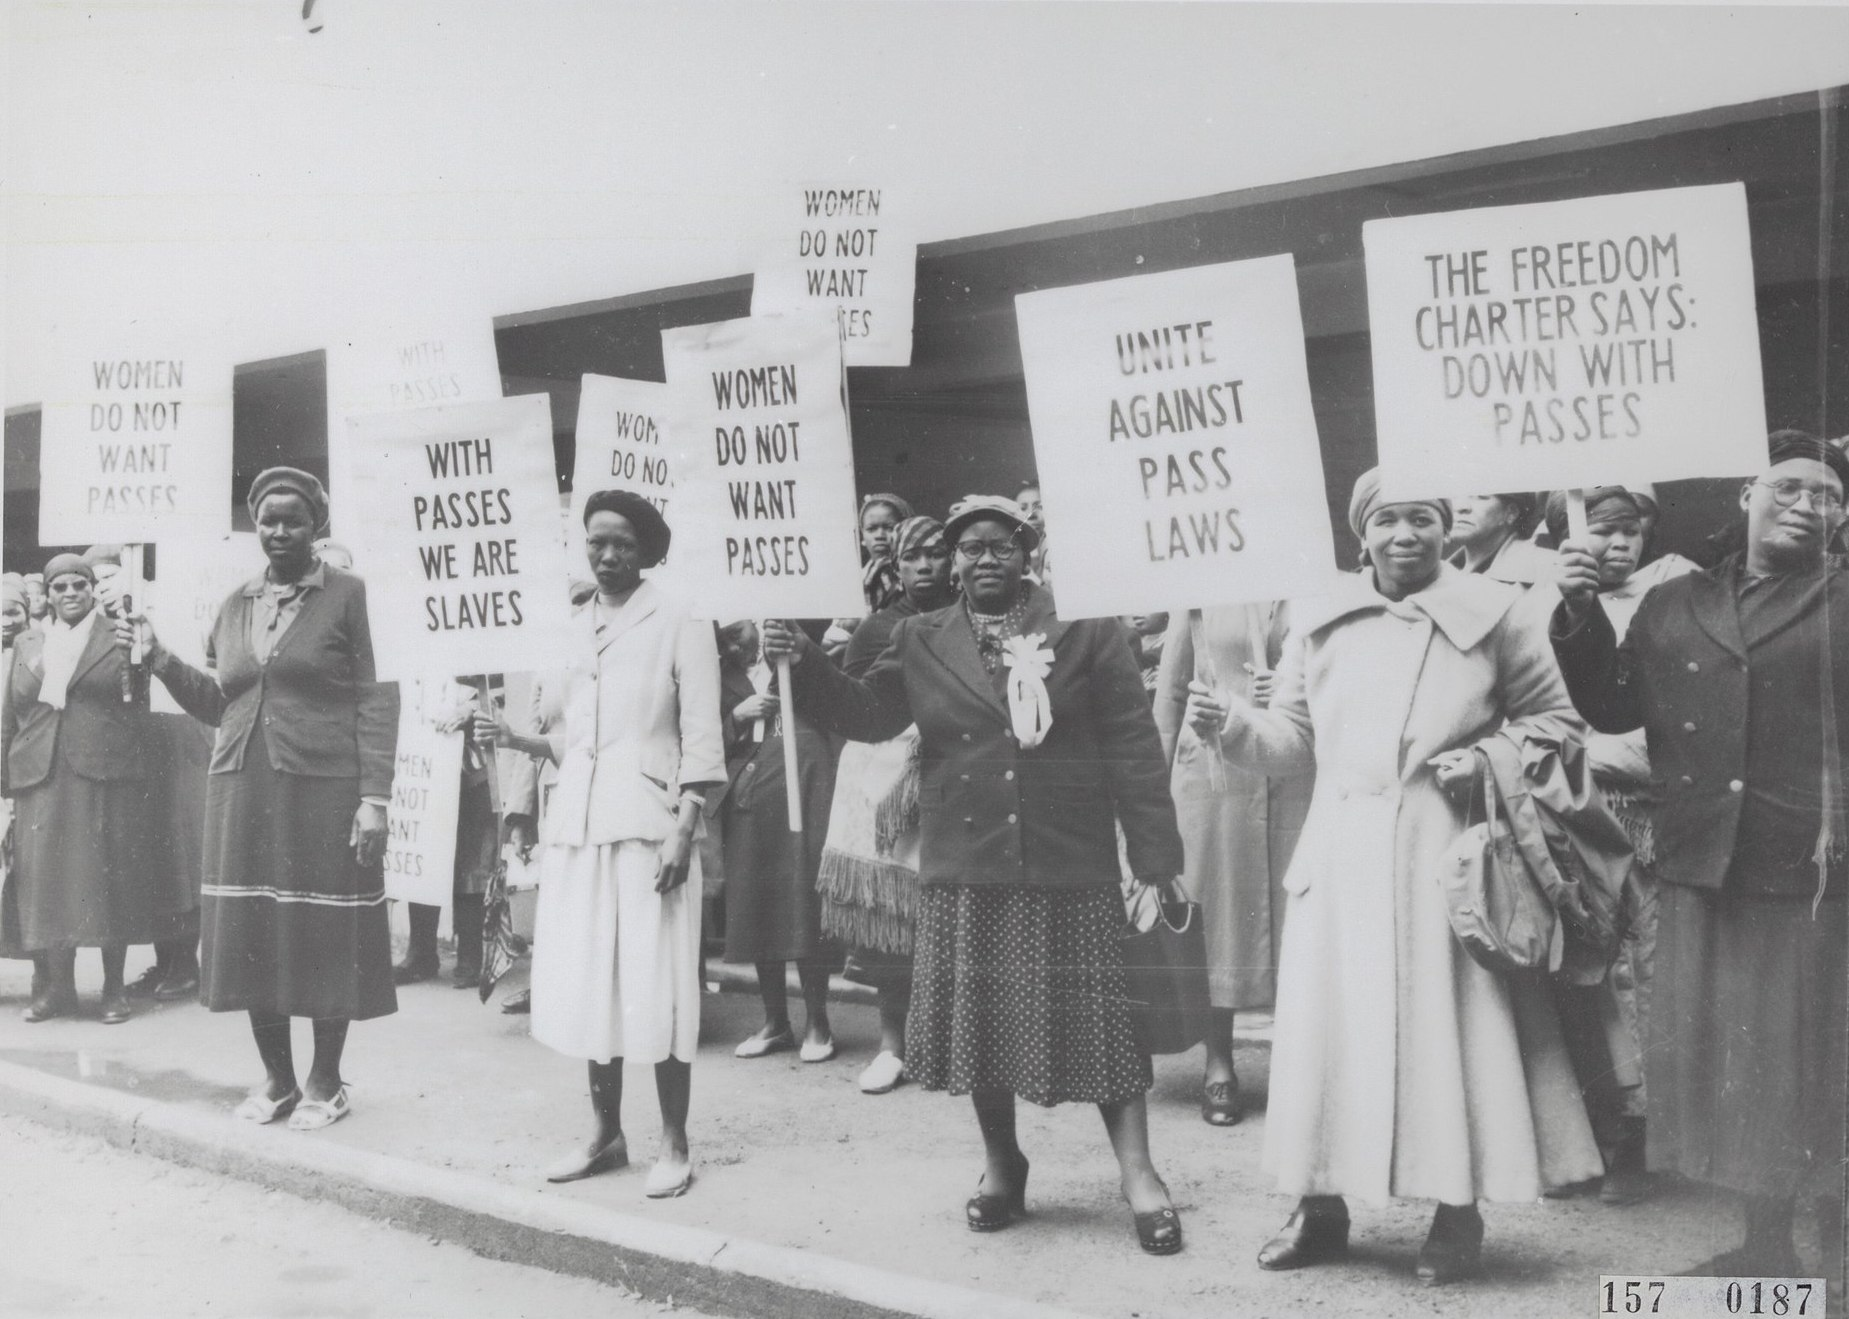 South African women protest against the Pass Laws, which restricted the movement of Blacks in the country, 1956. (Nationaal Archief)